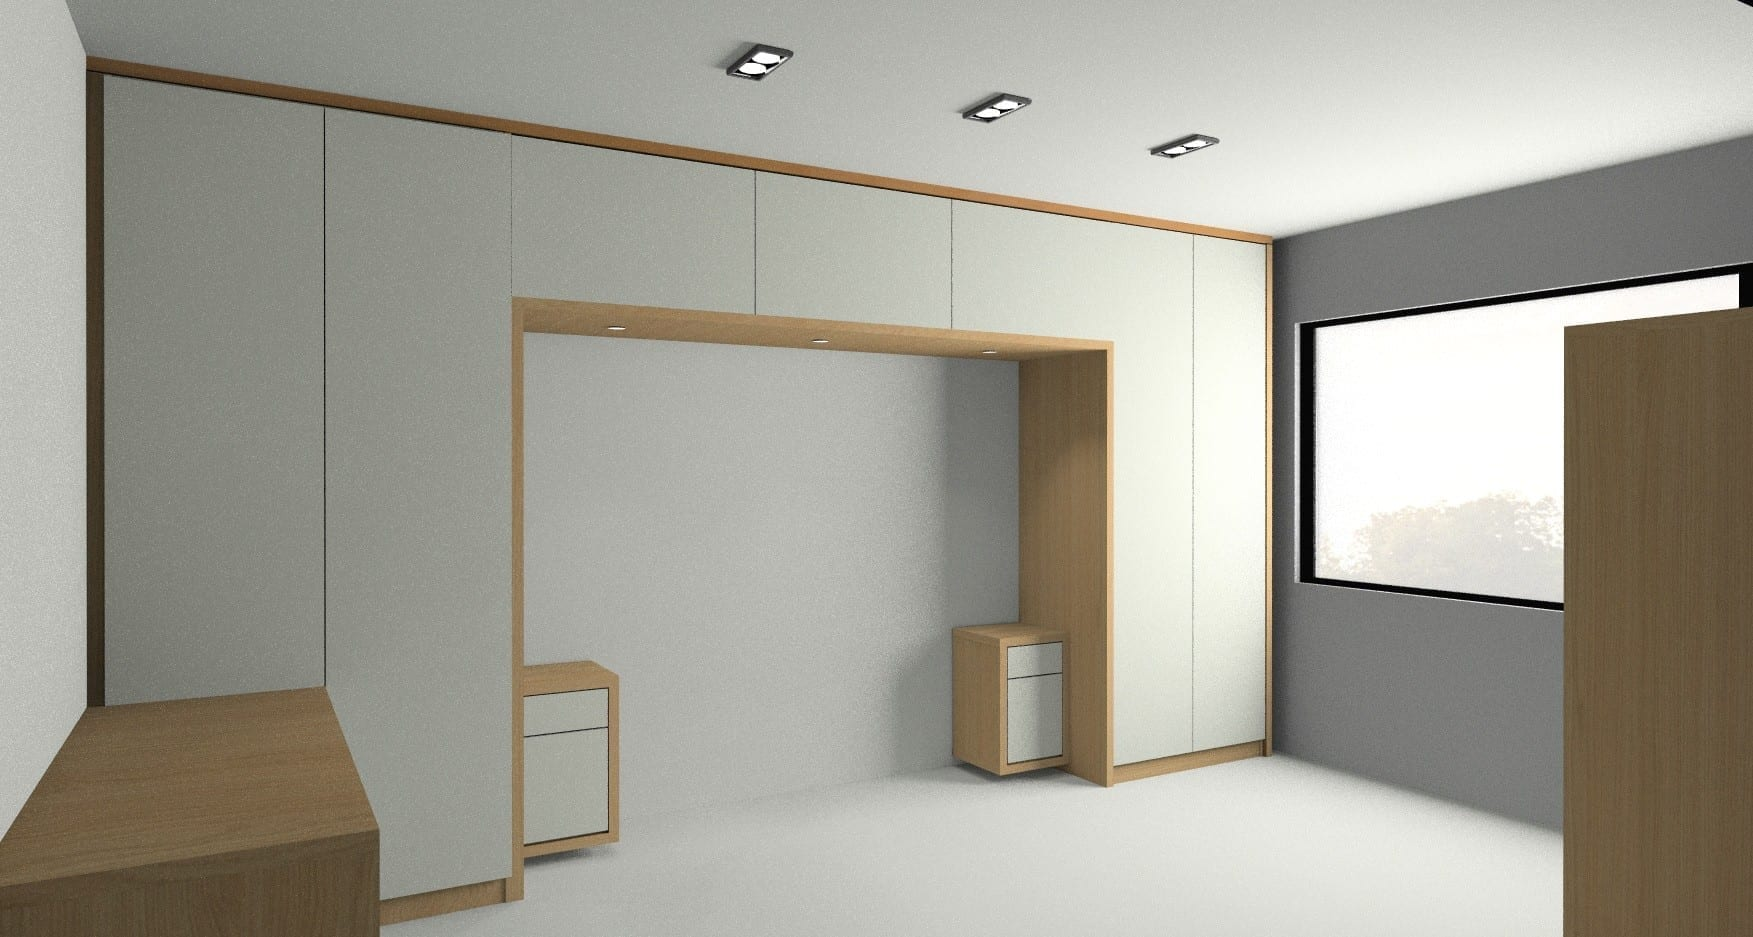 Rendered image which was part of the bespoke modern style bedroom furniture.